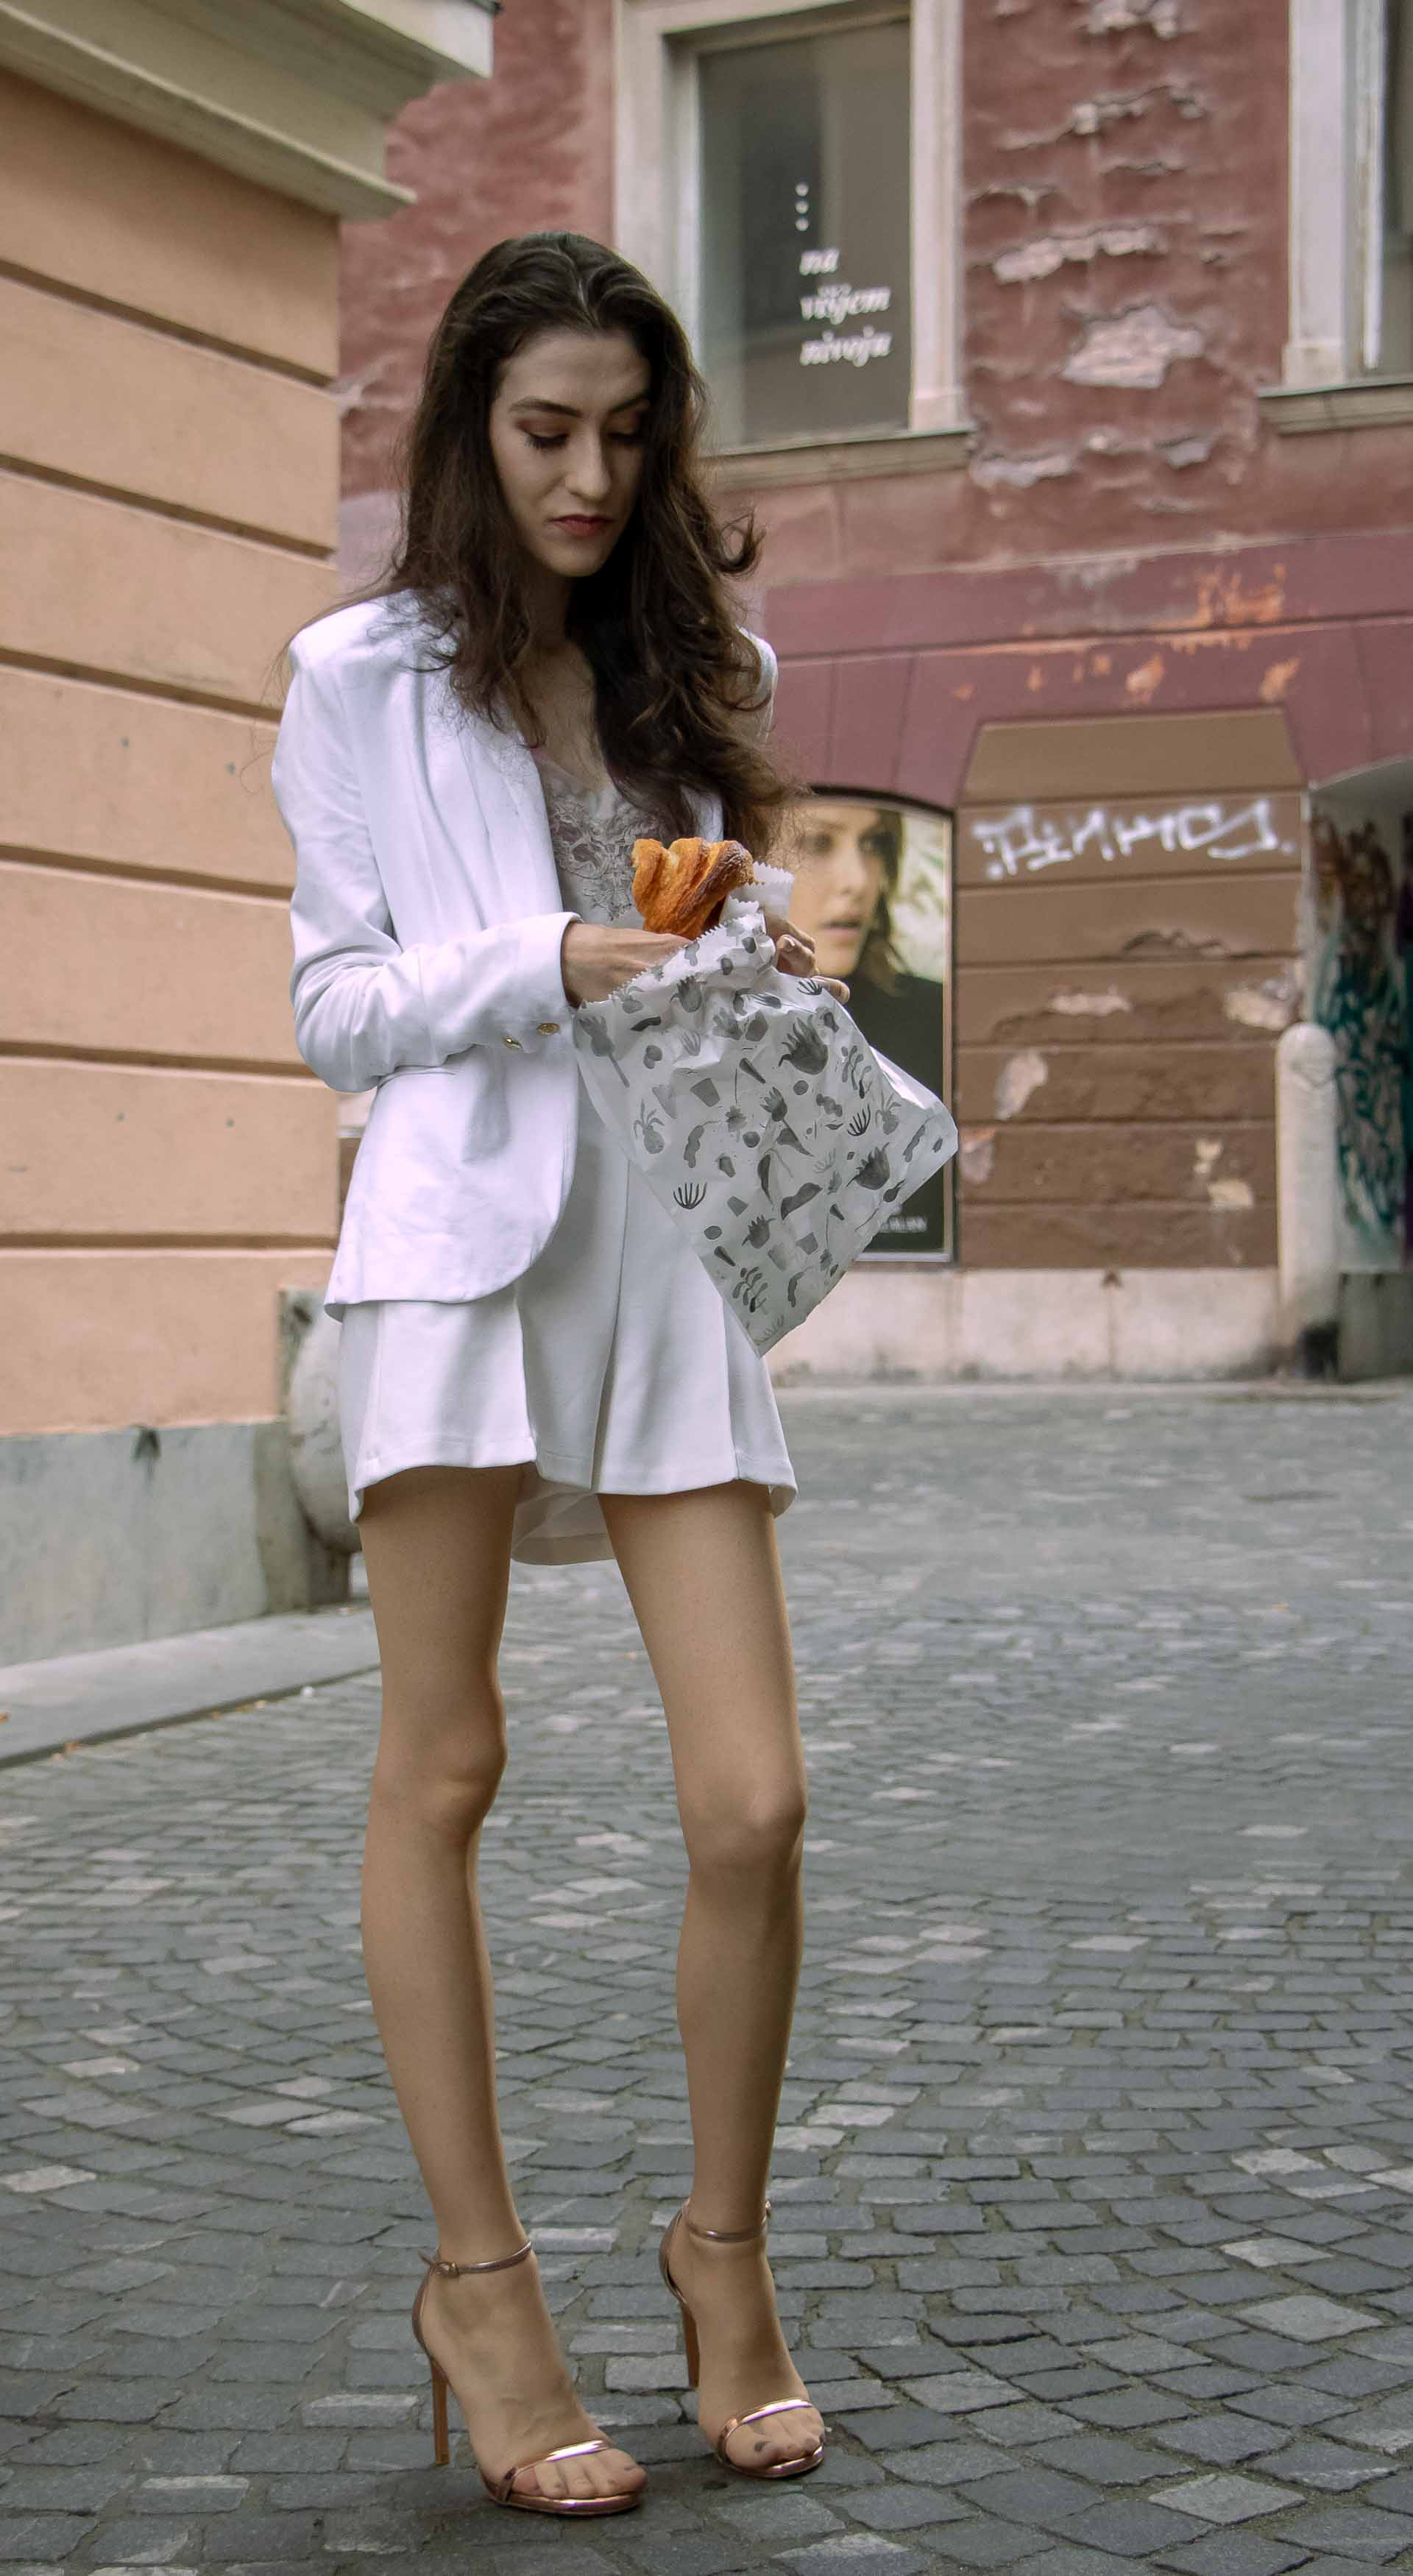 Beautiful Slovenian Fashion Blogger Veronika Lipar of Brunette from Wall wearing all in white suit, white blazer, white tailored shorts, Stuart Weitzman high shine metallic nudist song sandals, shoulder bag while eating a croissant on the street in the morning after party